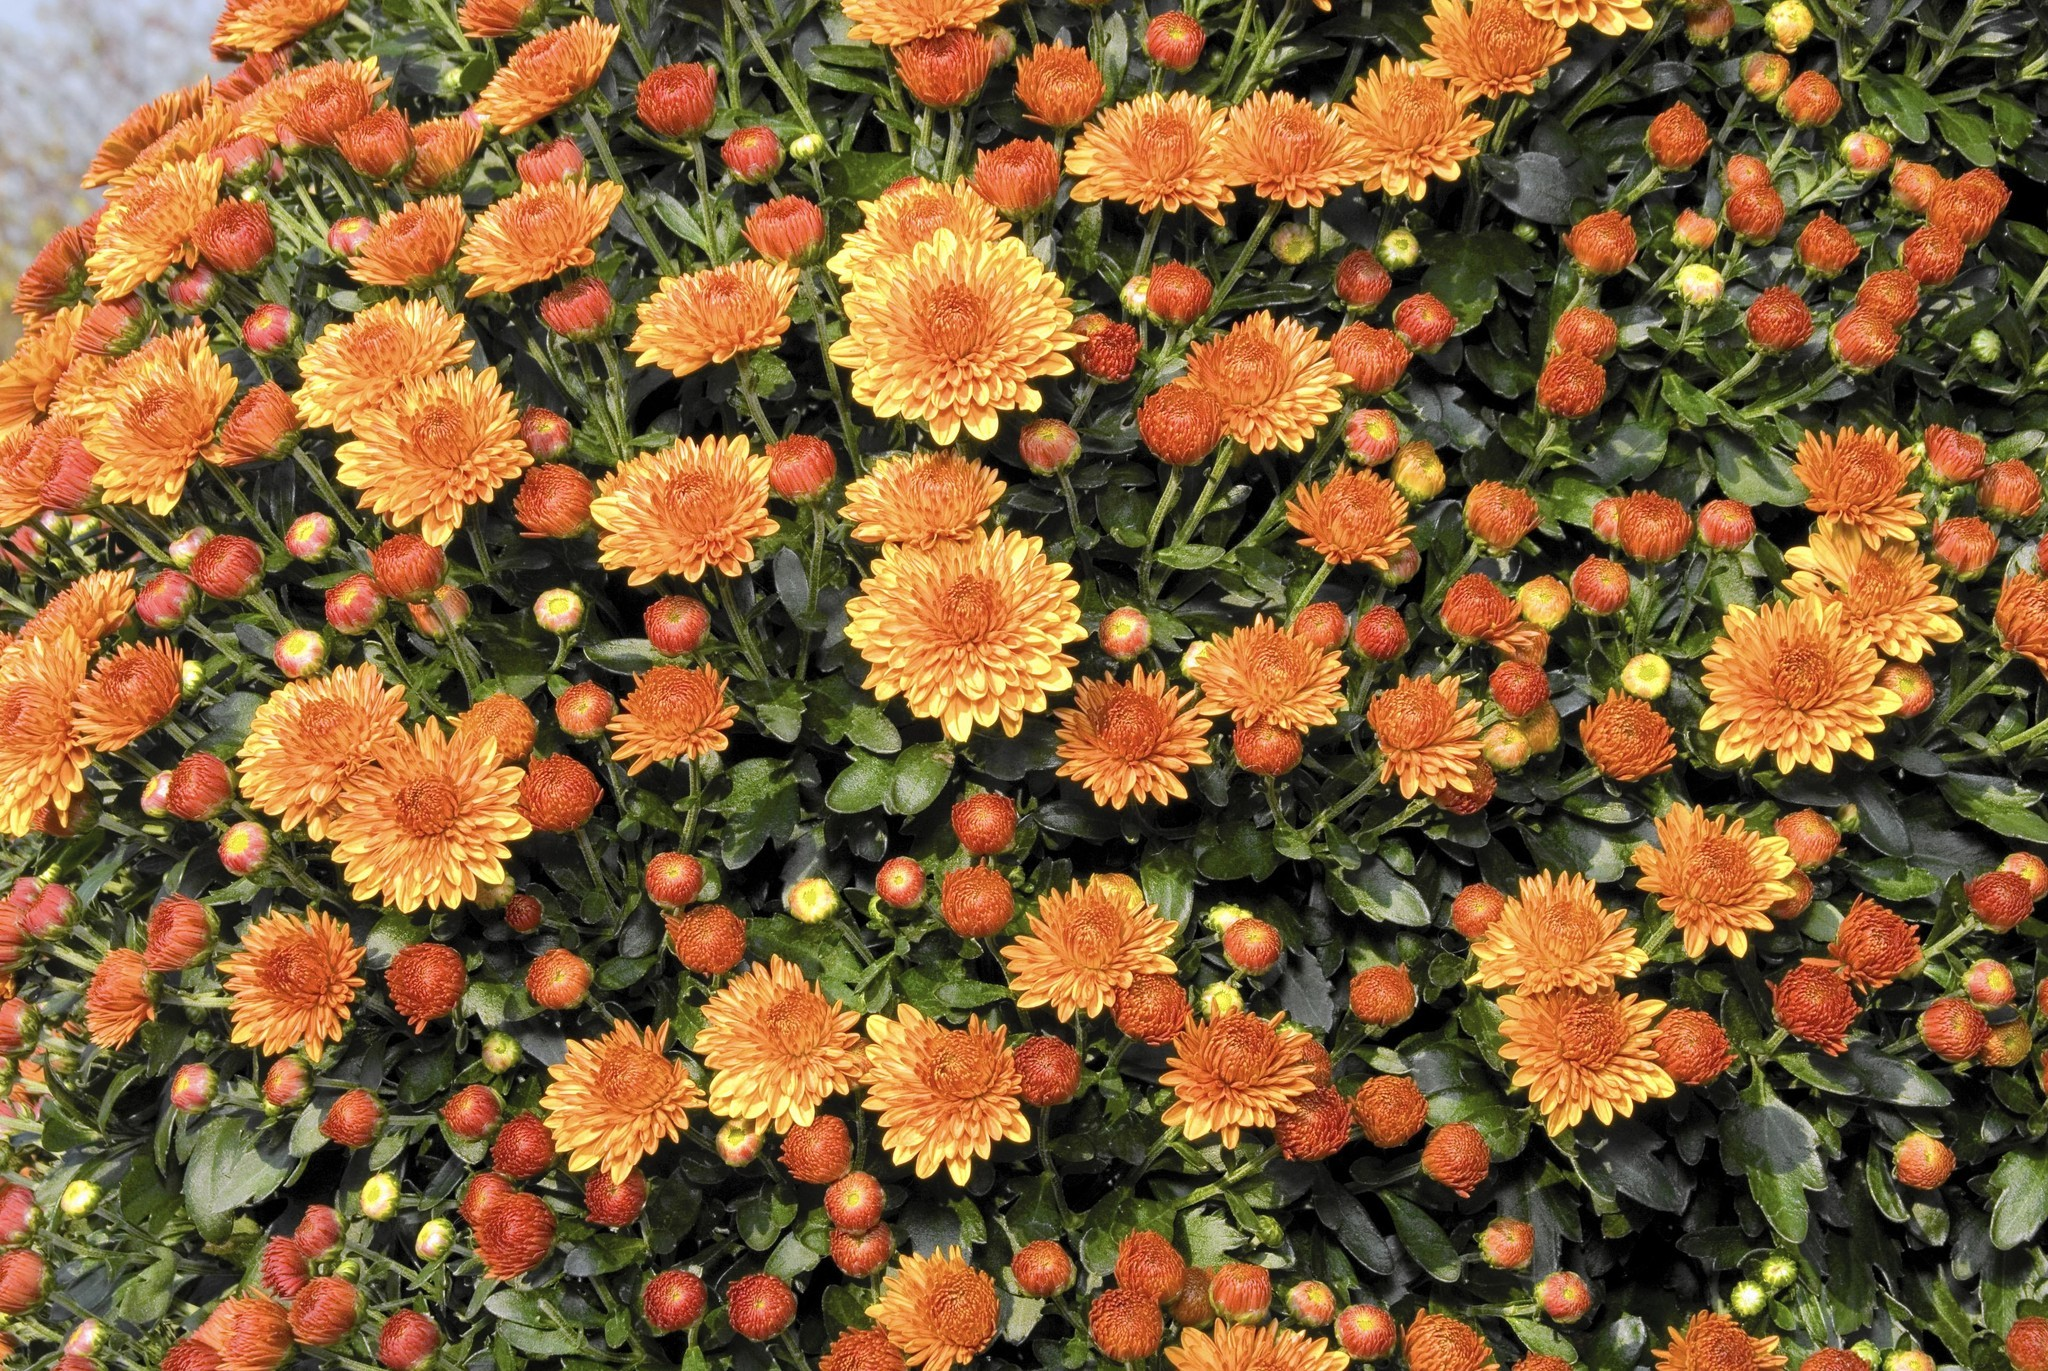 Planting garden mums getting the most bloom for your buck chicago planting garden mums getting the most bloom for your buck chicago tribune izmirmasajfo